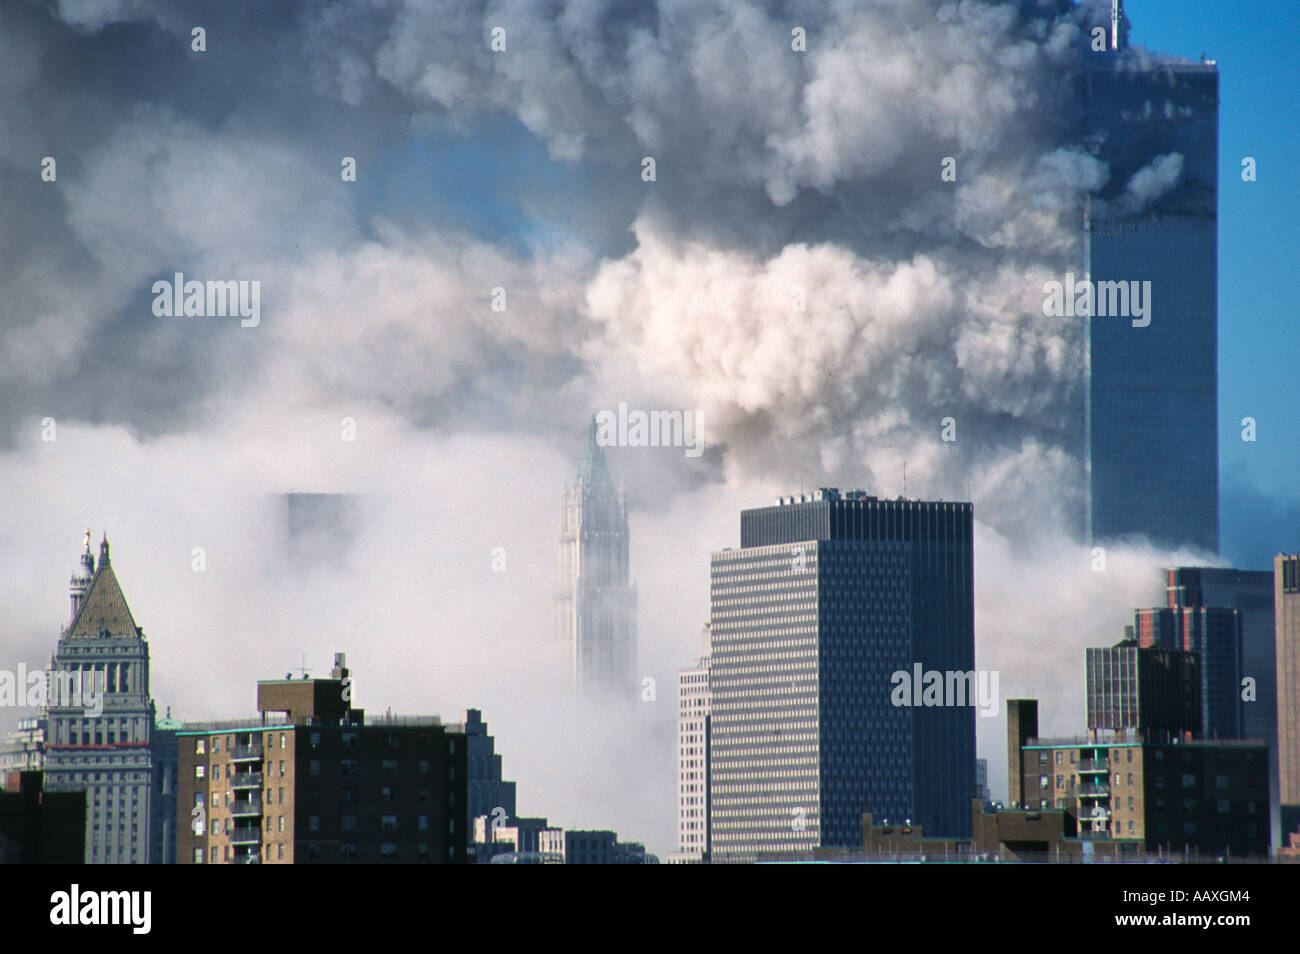 World trade center collapse on September 11th, 2001. The South Tower (WT2) is collapsing with the North tower (WTC1) behind NYC - Stock Image